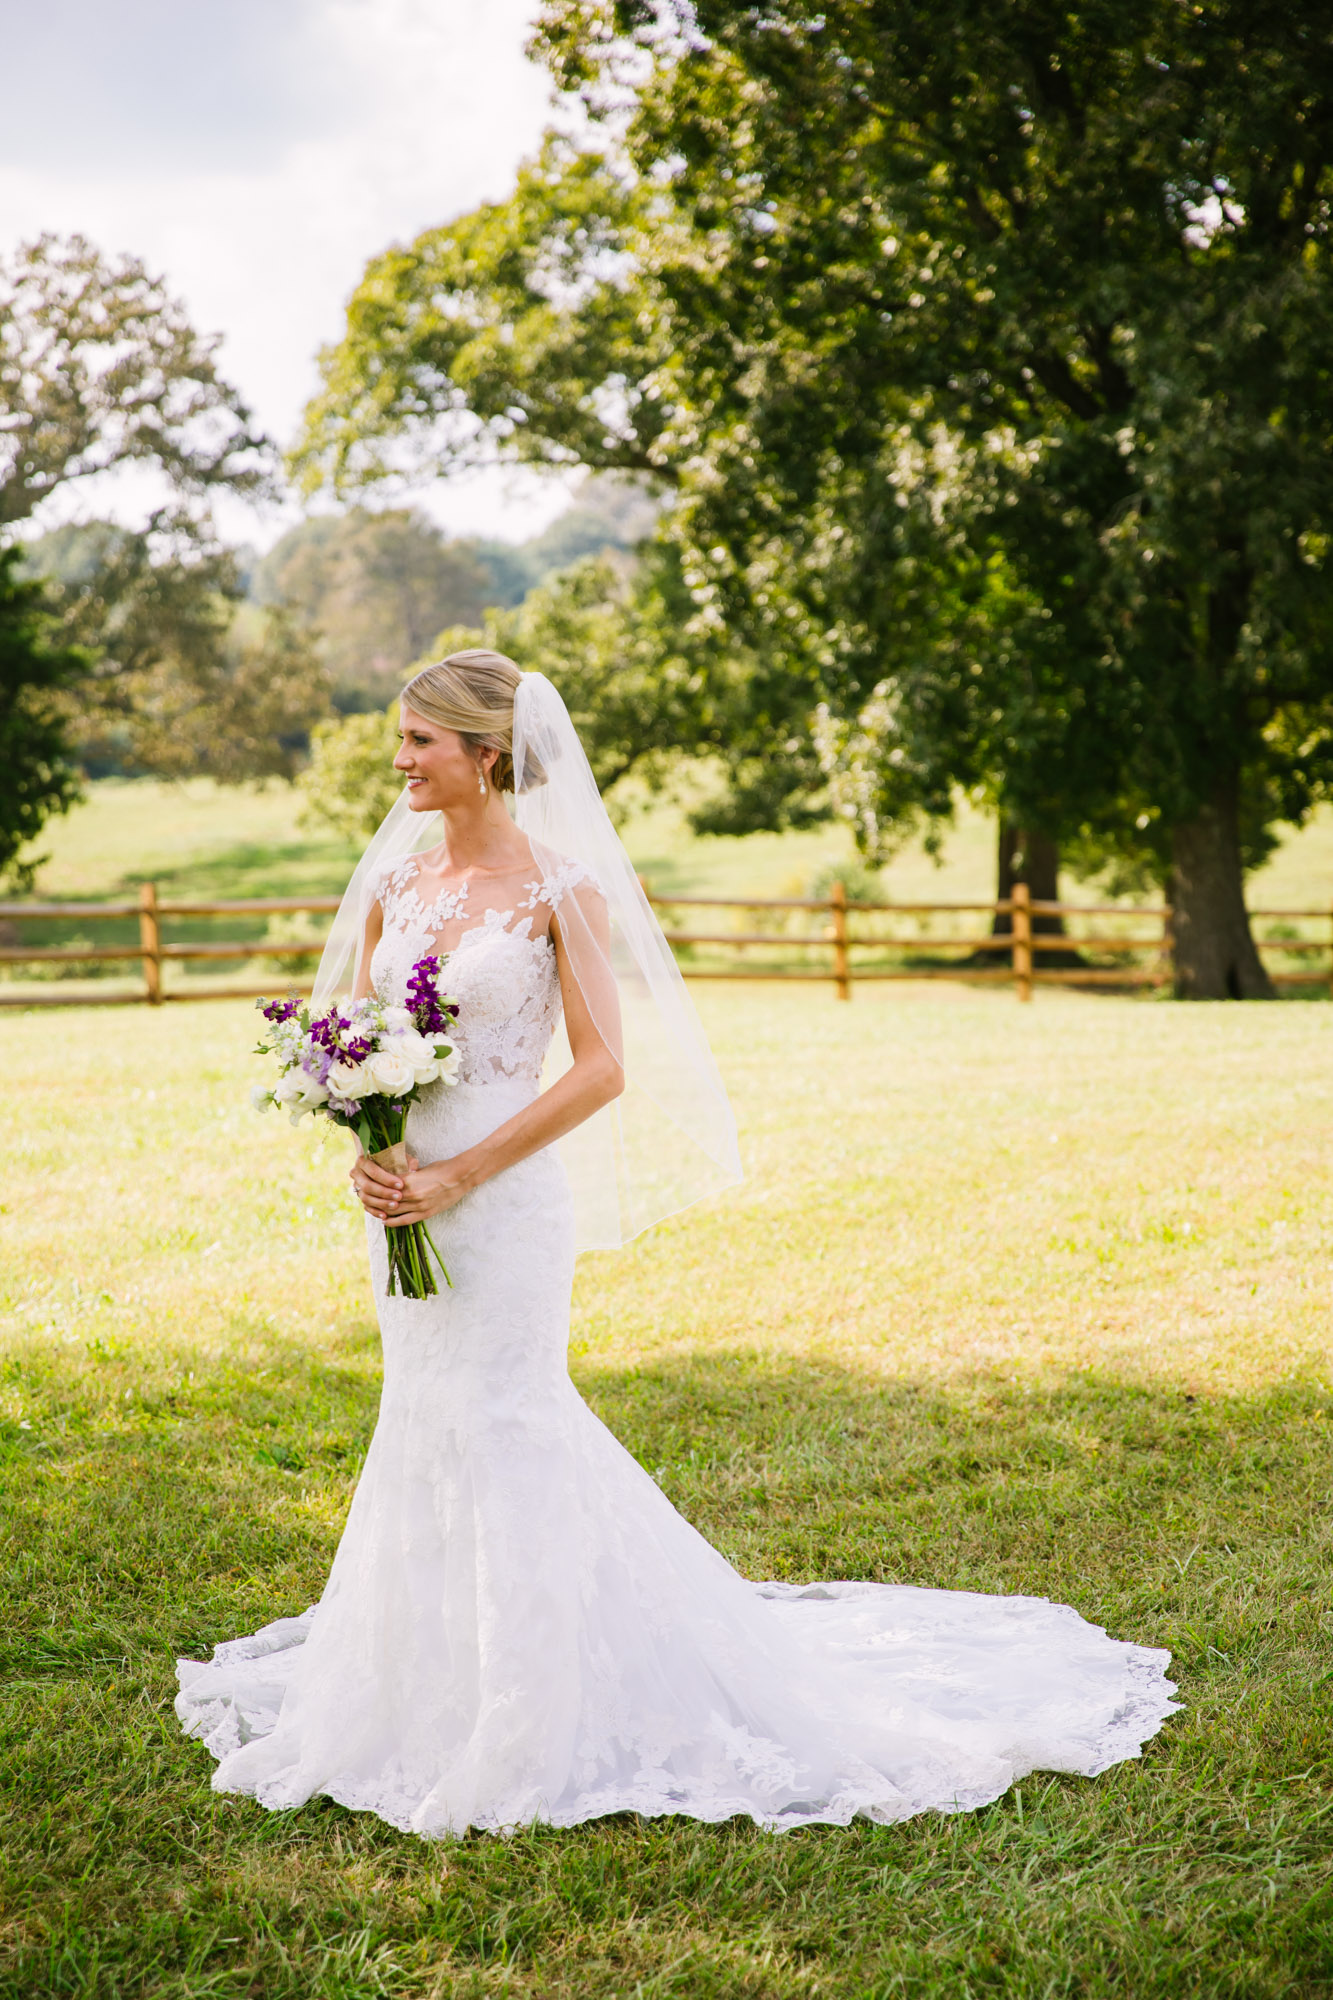 Waynesville, NC Wedding Photography | Bridal Portrait